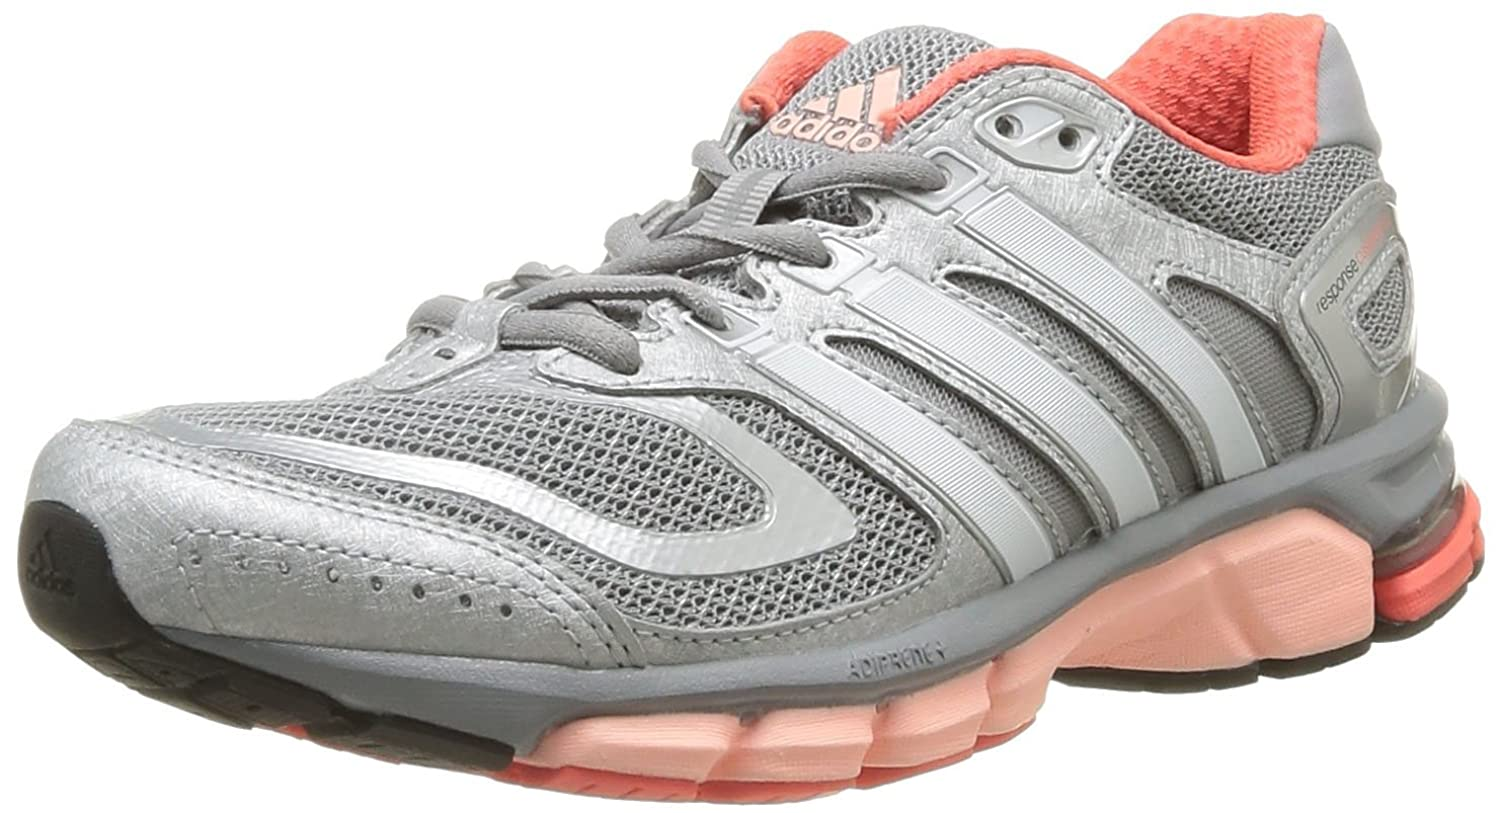 adidas Performance Womens Response Cushion 22-5 Running Shoes D67065 Mid  Grey/Pearl Metal/Glow Orange 3.5 UK, 36 EU: Amazon.co.uk: Shoes \u0026 Bags